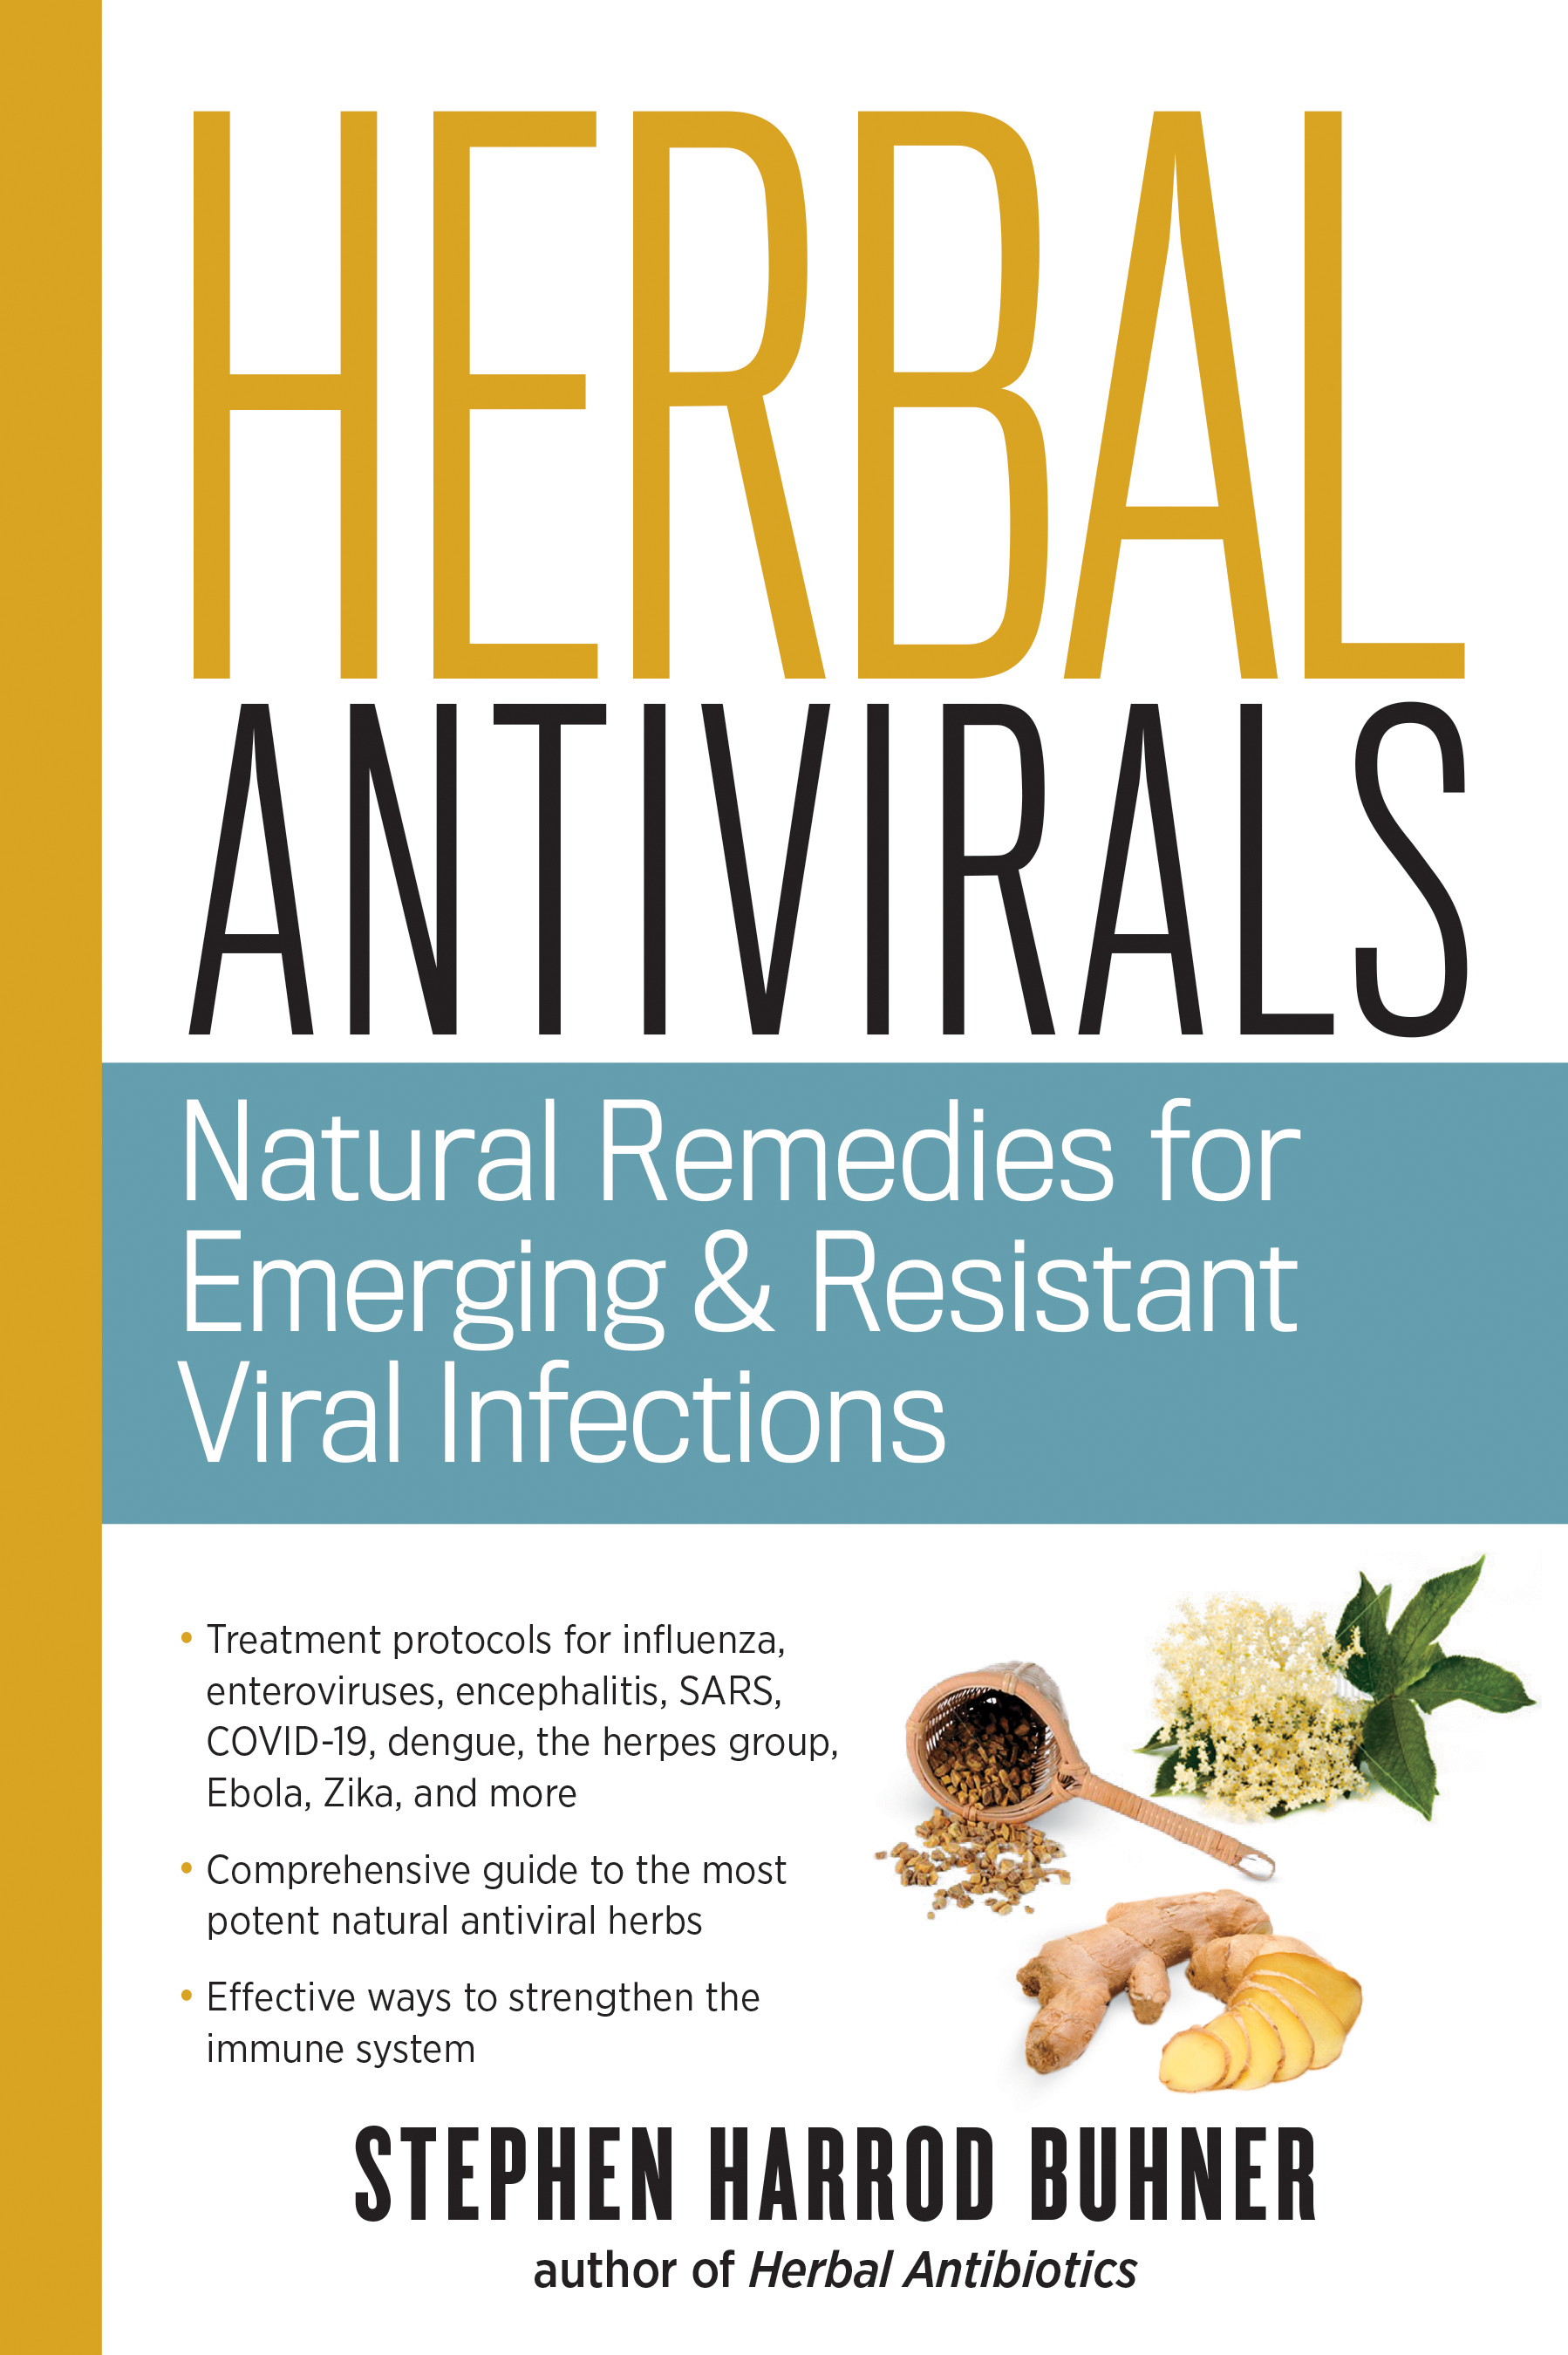 Herbal Antivirals Natural Remedies for Emerging & Resistant Viral Infections - Stephen Harrod Buhner